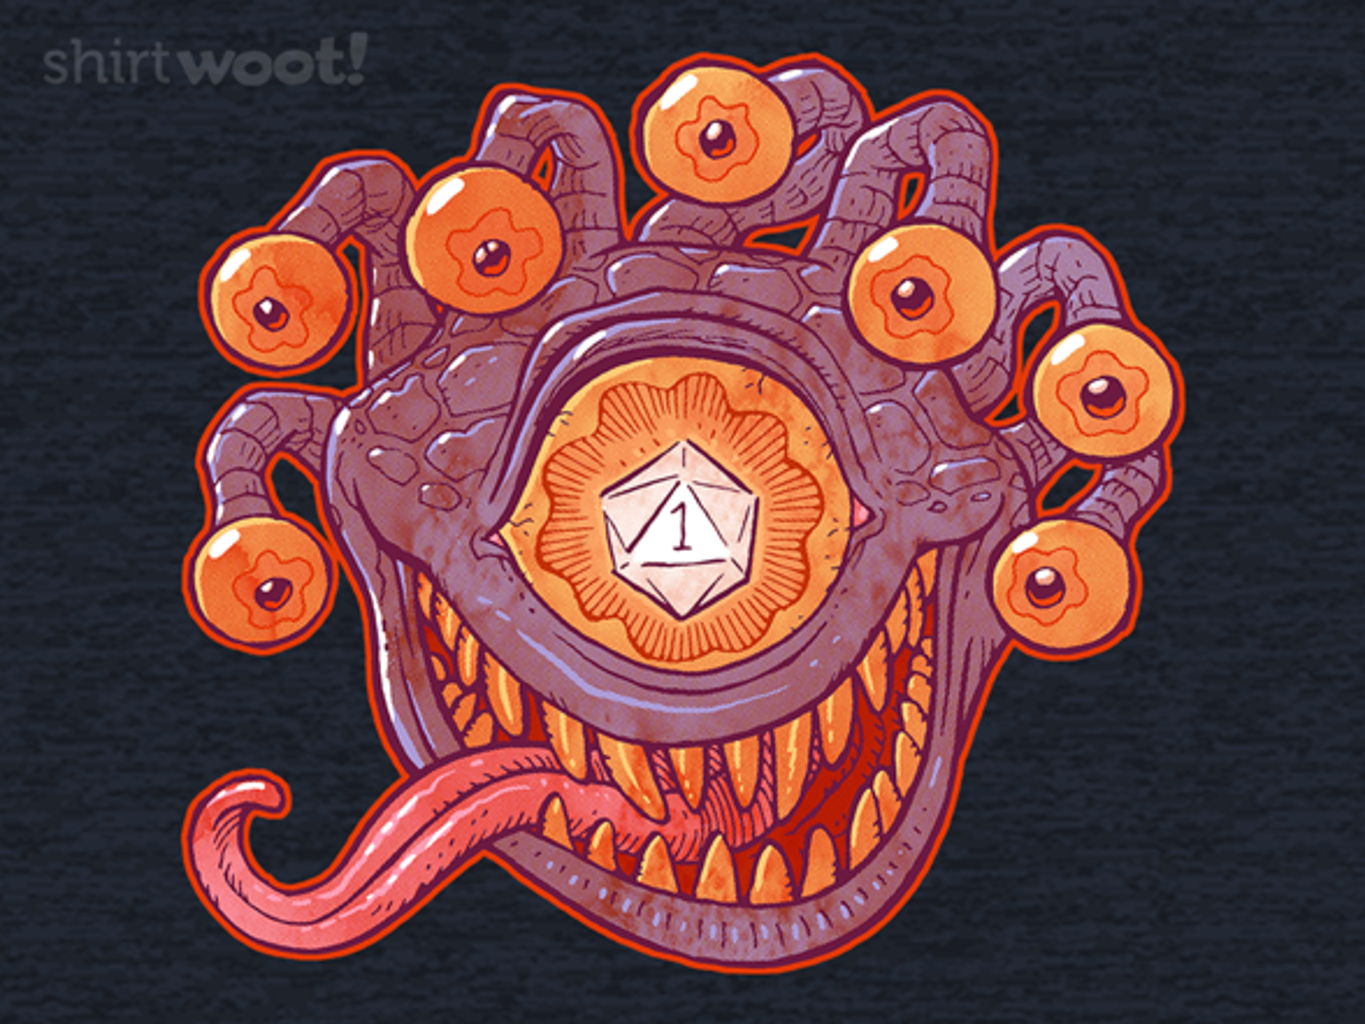 Woot!: Eye of the Beholder